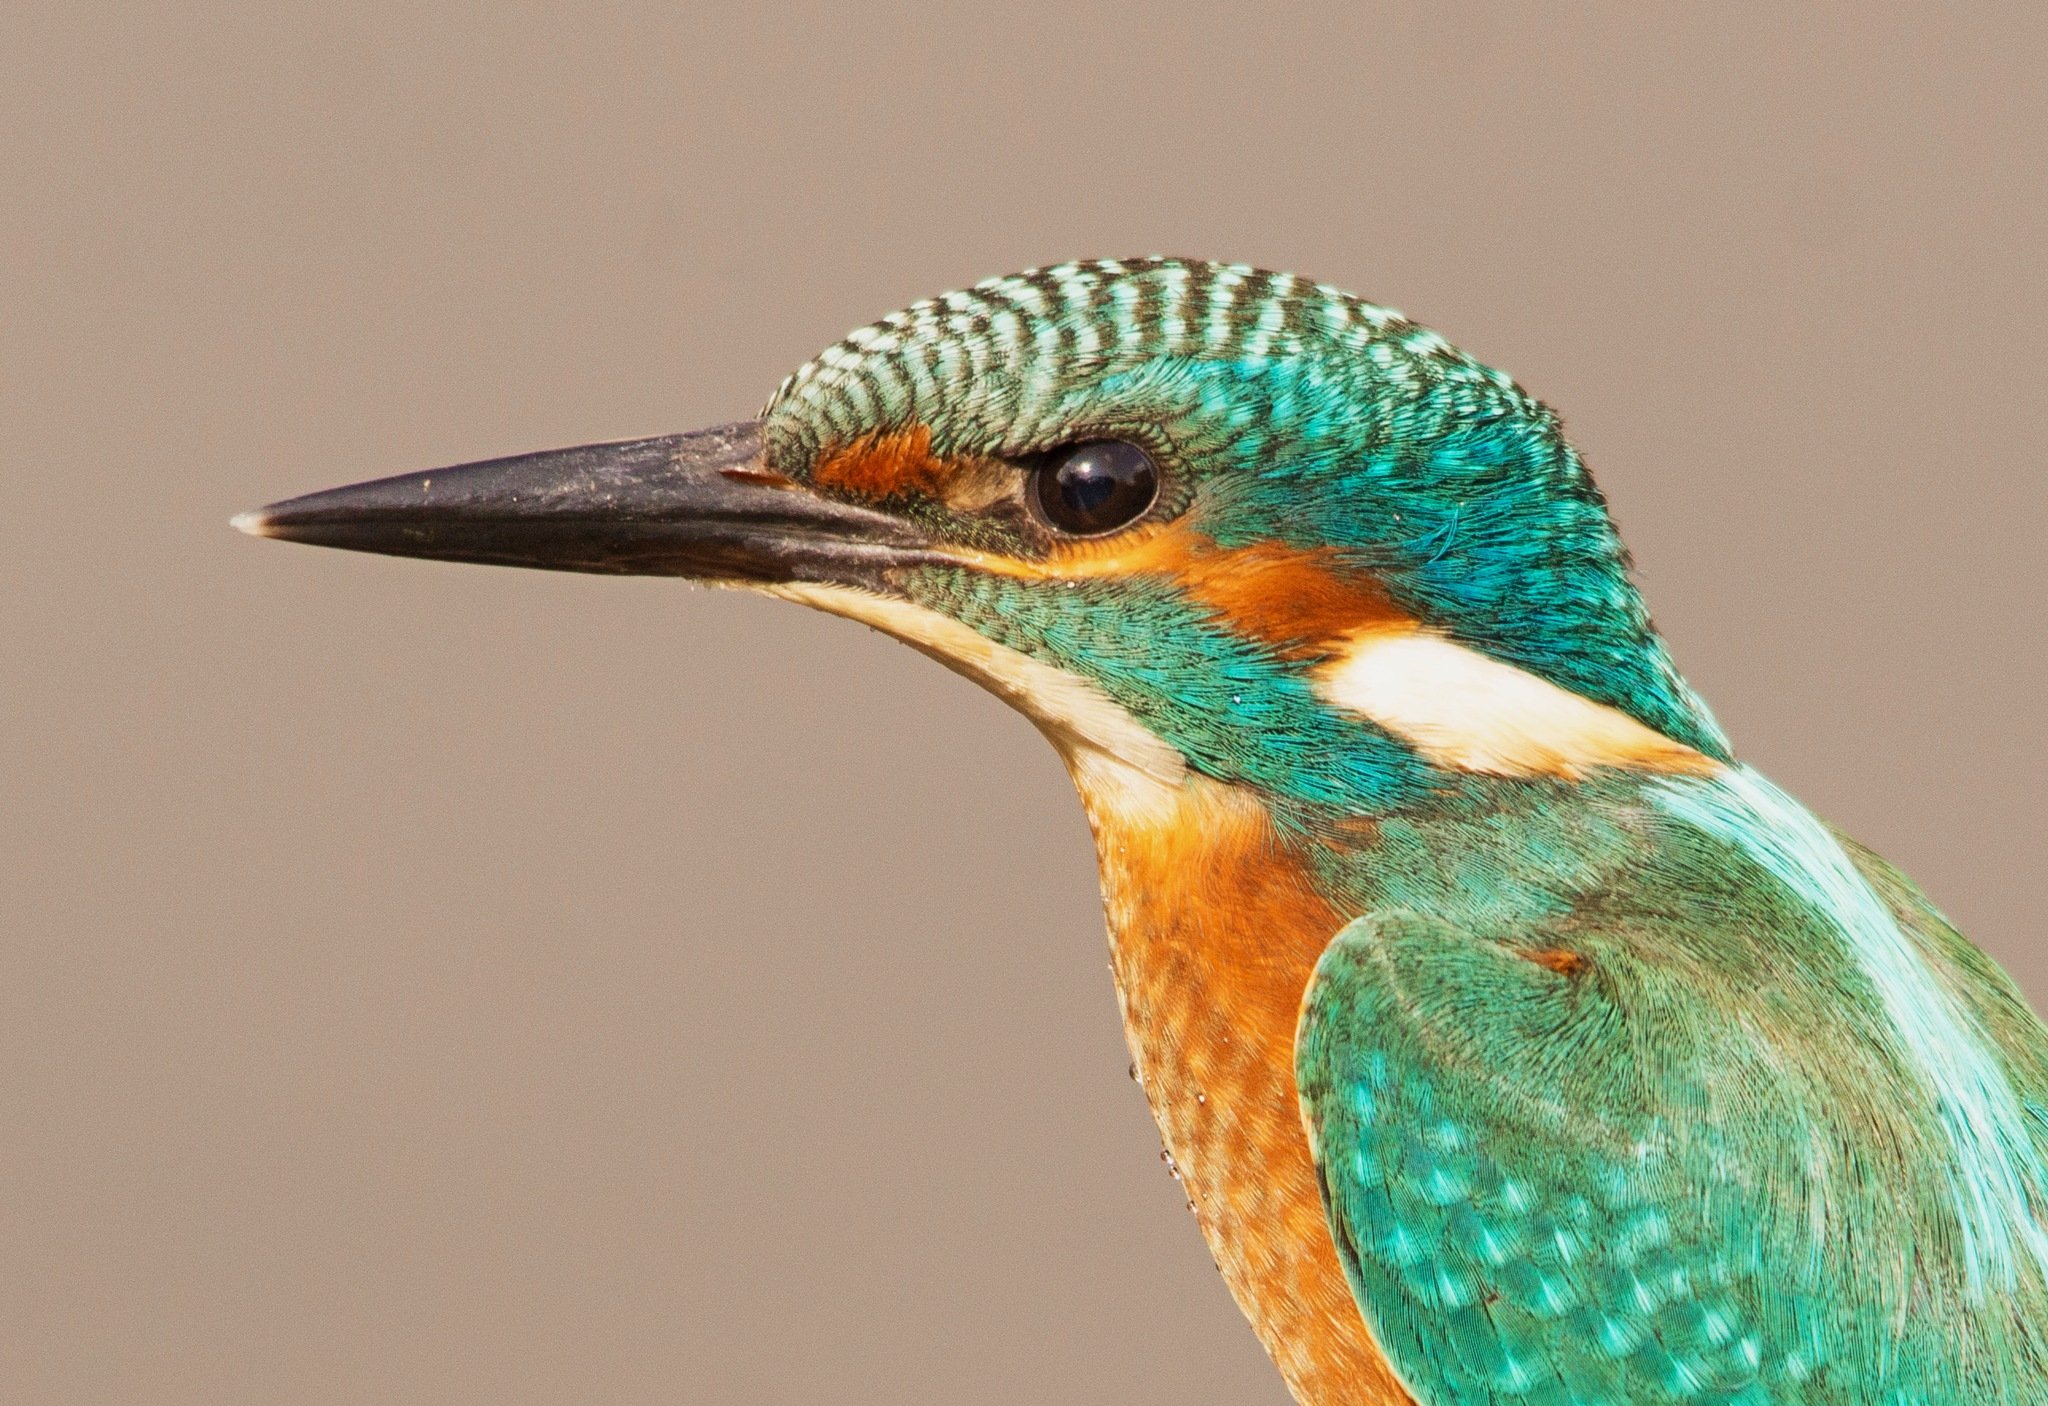 Close-up Kingfisher by Hans Lunenborg